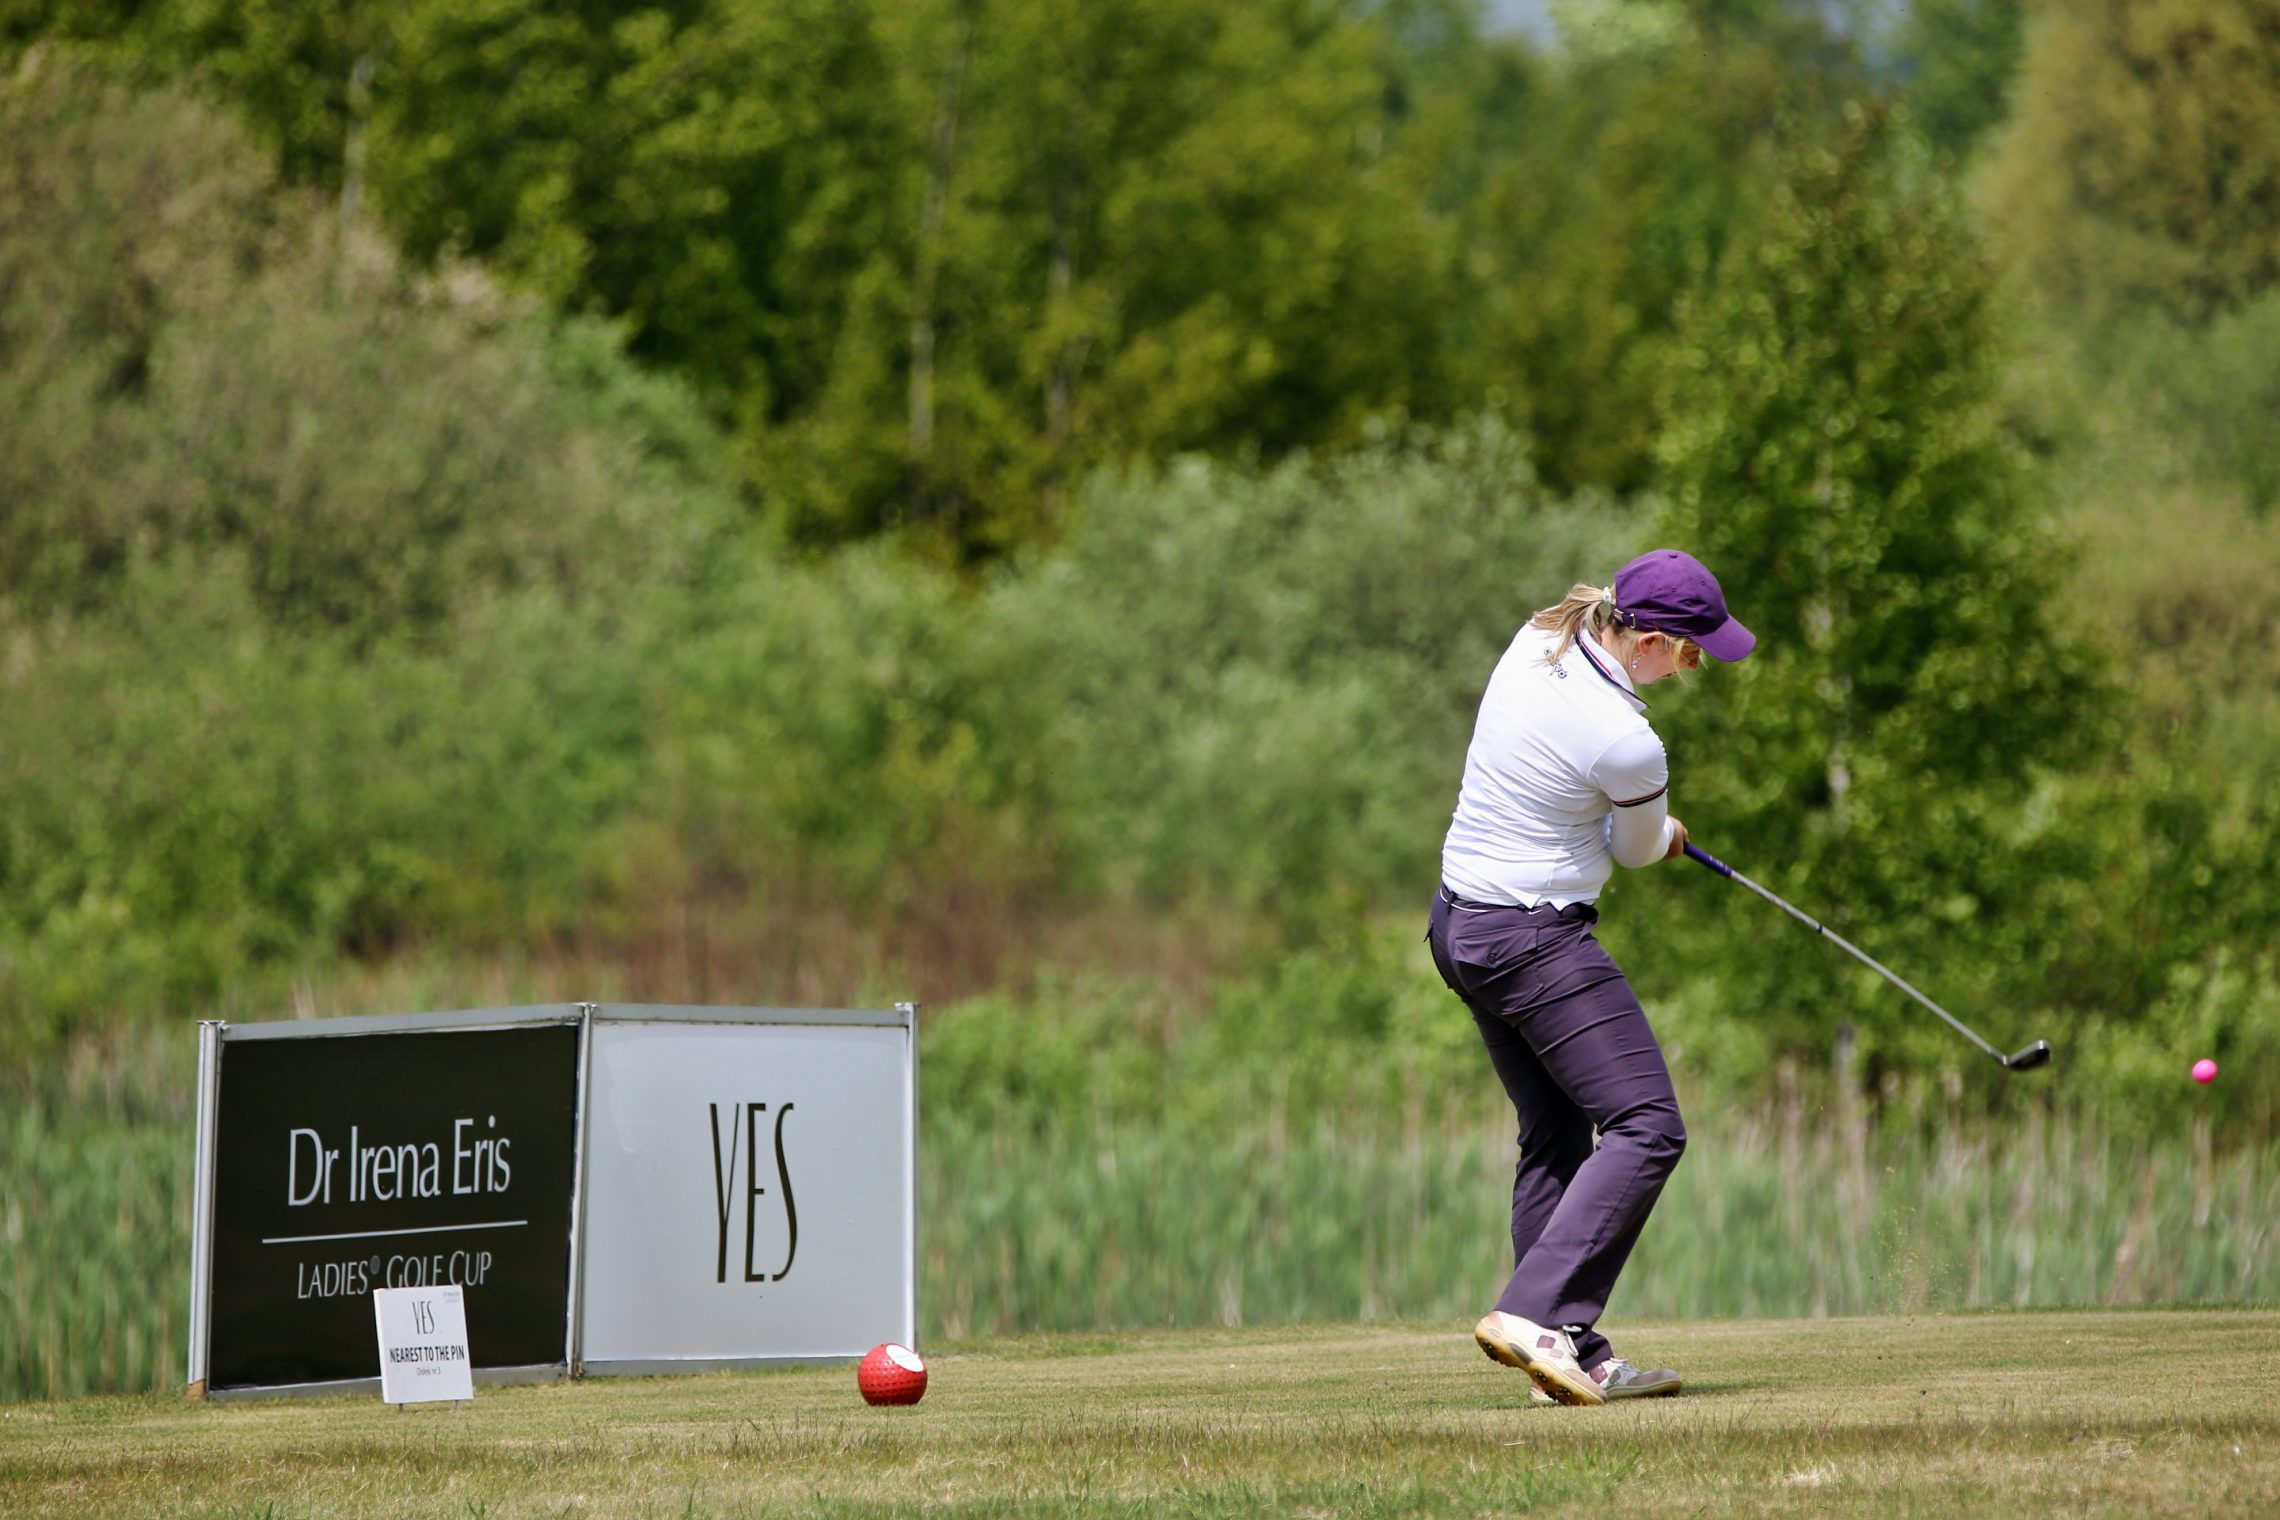 YES na Dr Irena Eris Ladies' Golf Cup